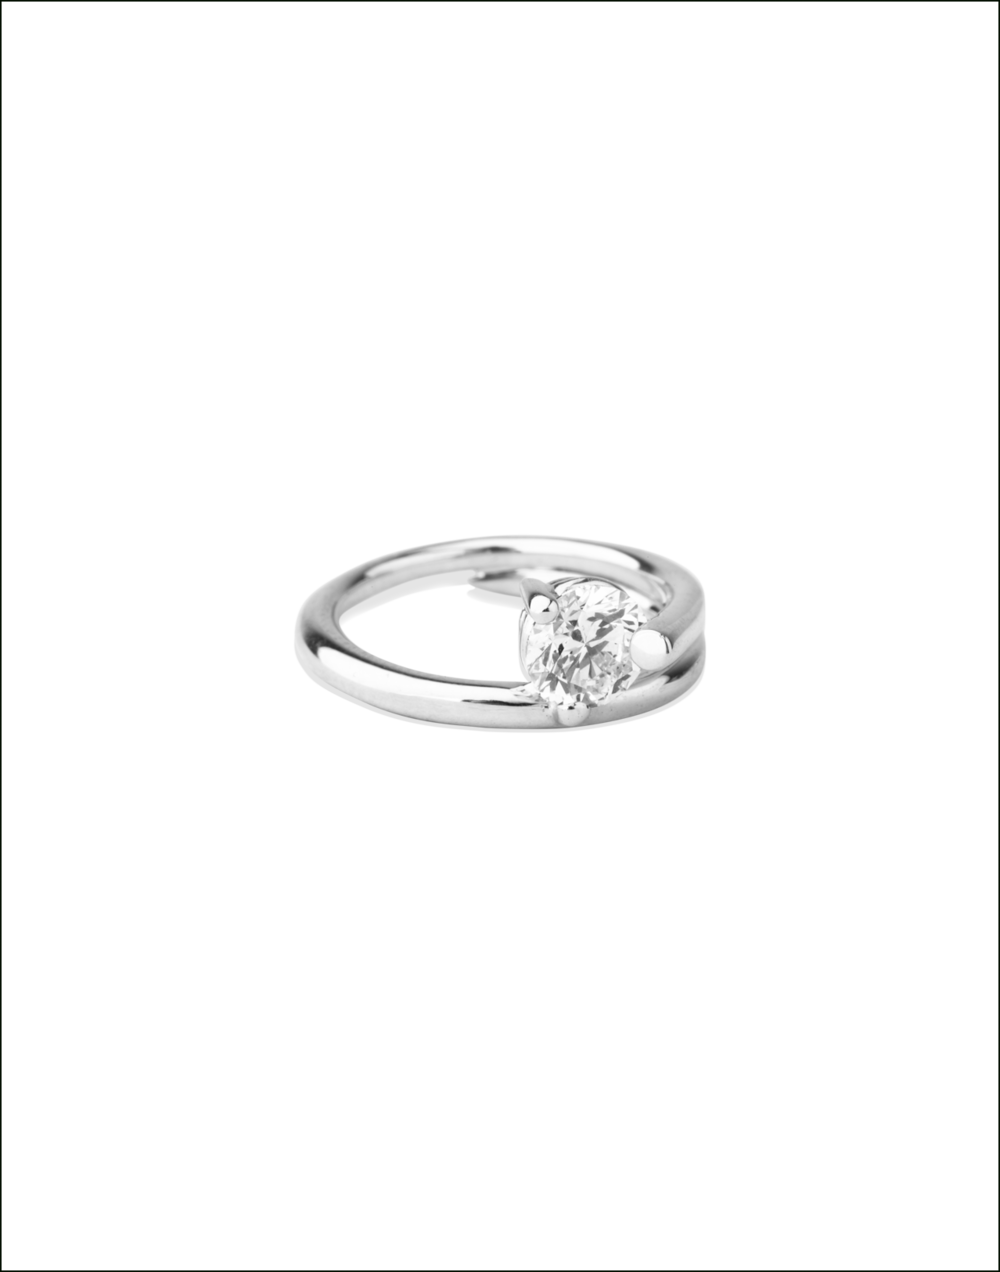 Completedworks-Subverted-Flower-Bridal-Ring-WHITE-GOLD-4-1.png